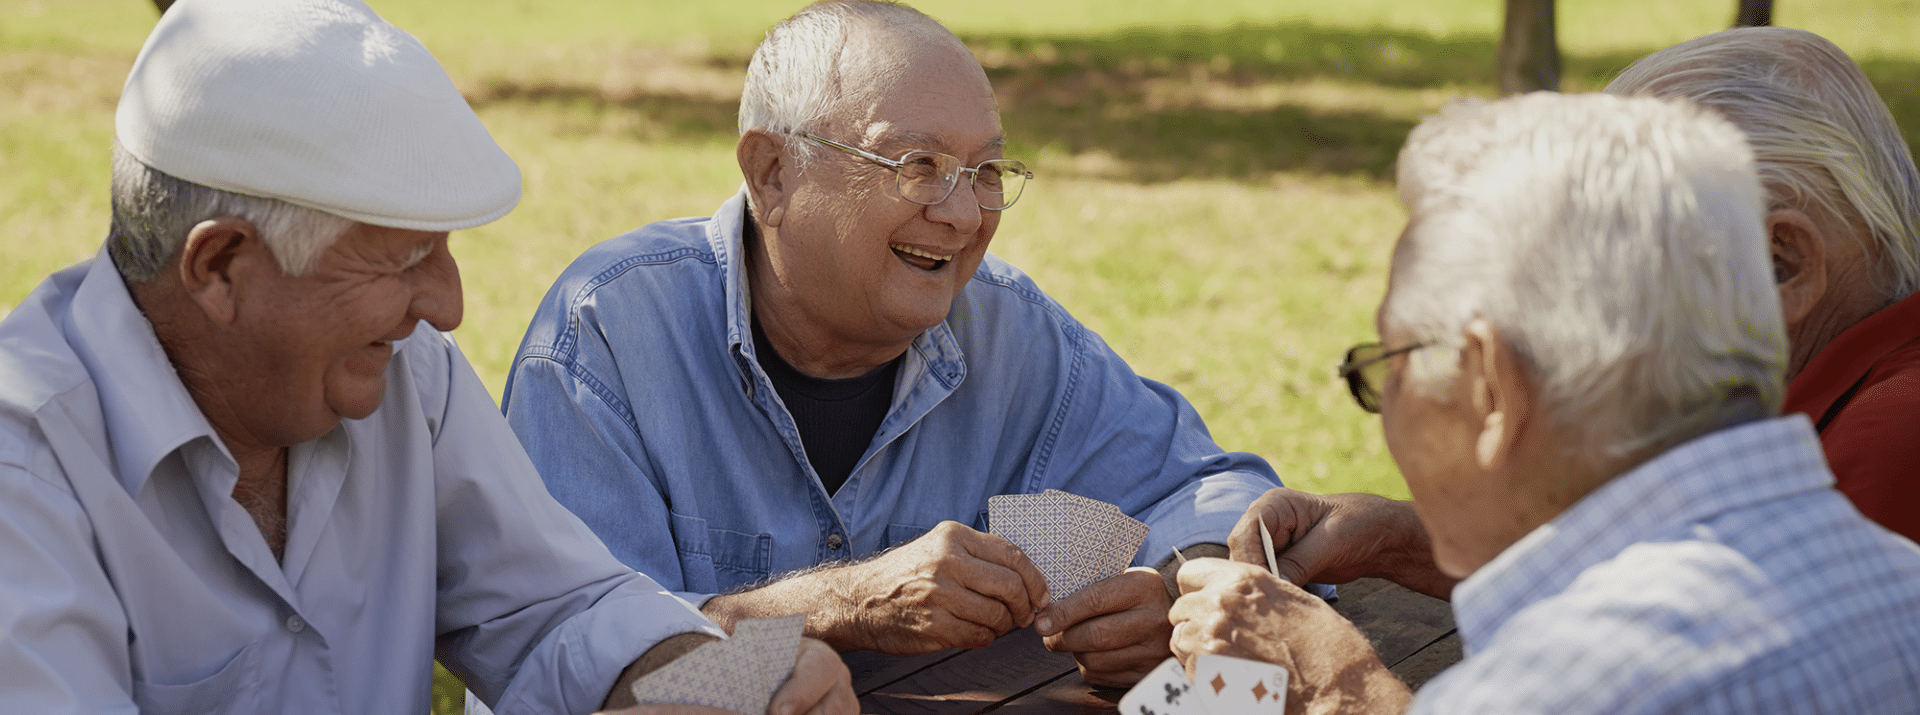 Hearing aids help people improve their quality of life.